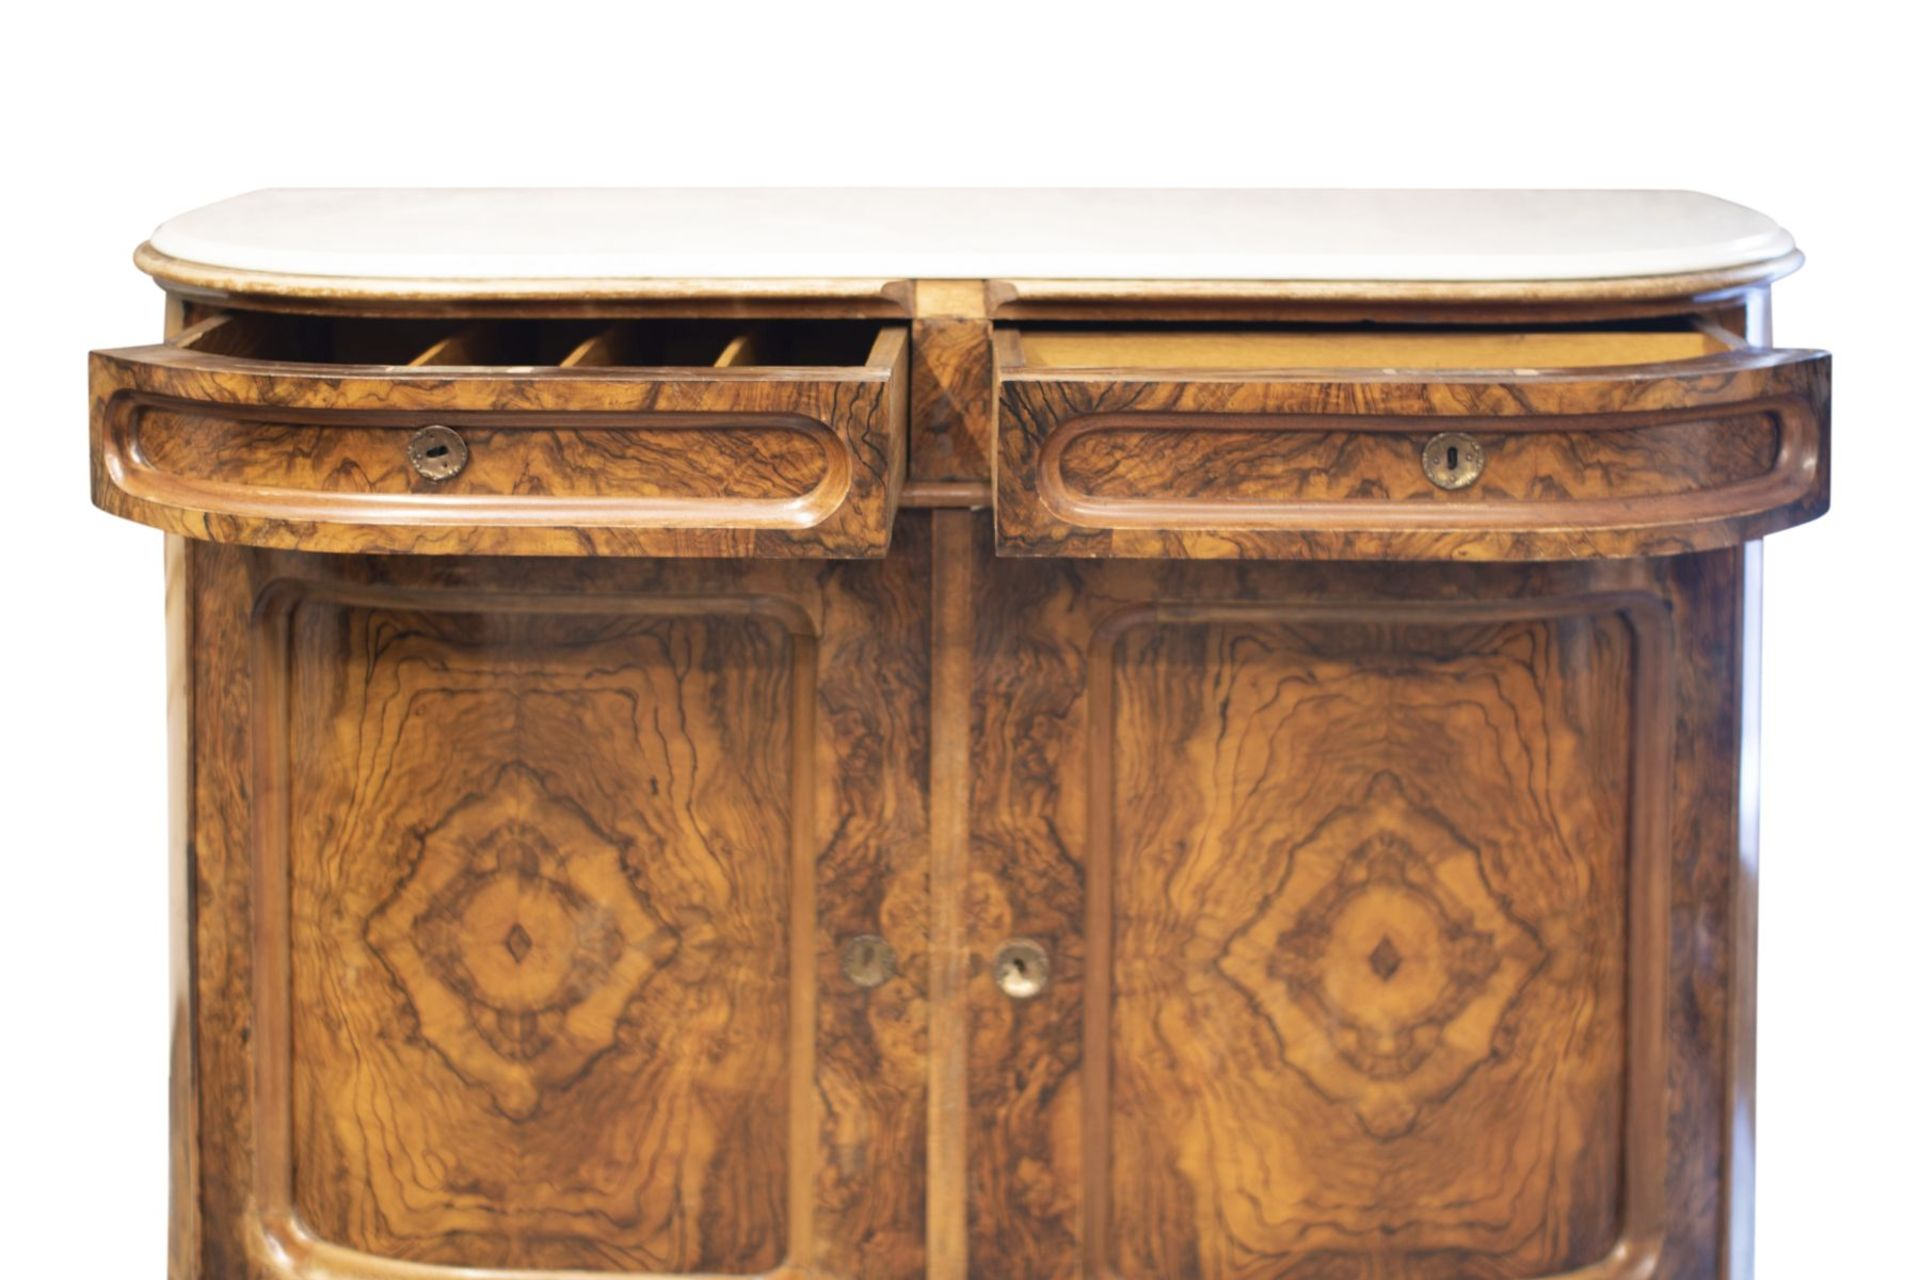 Salon chest of drawers with profiled marble top - Image 2 of 6